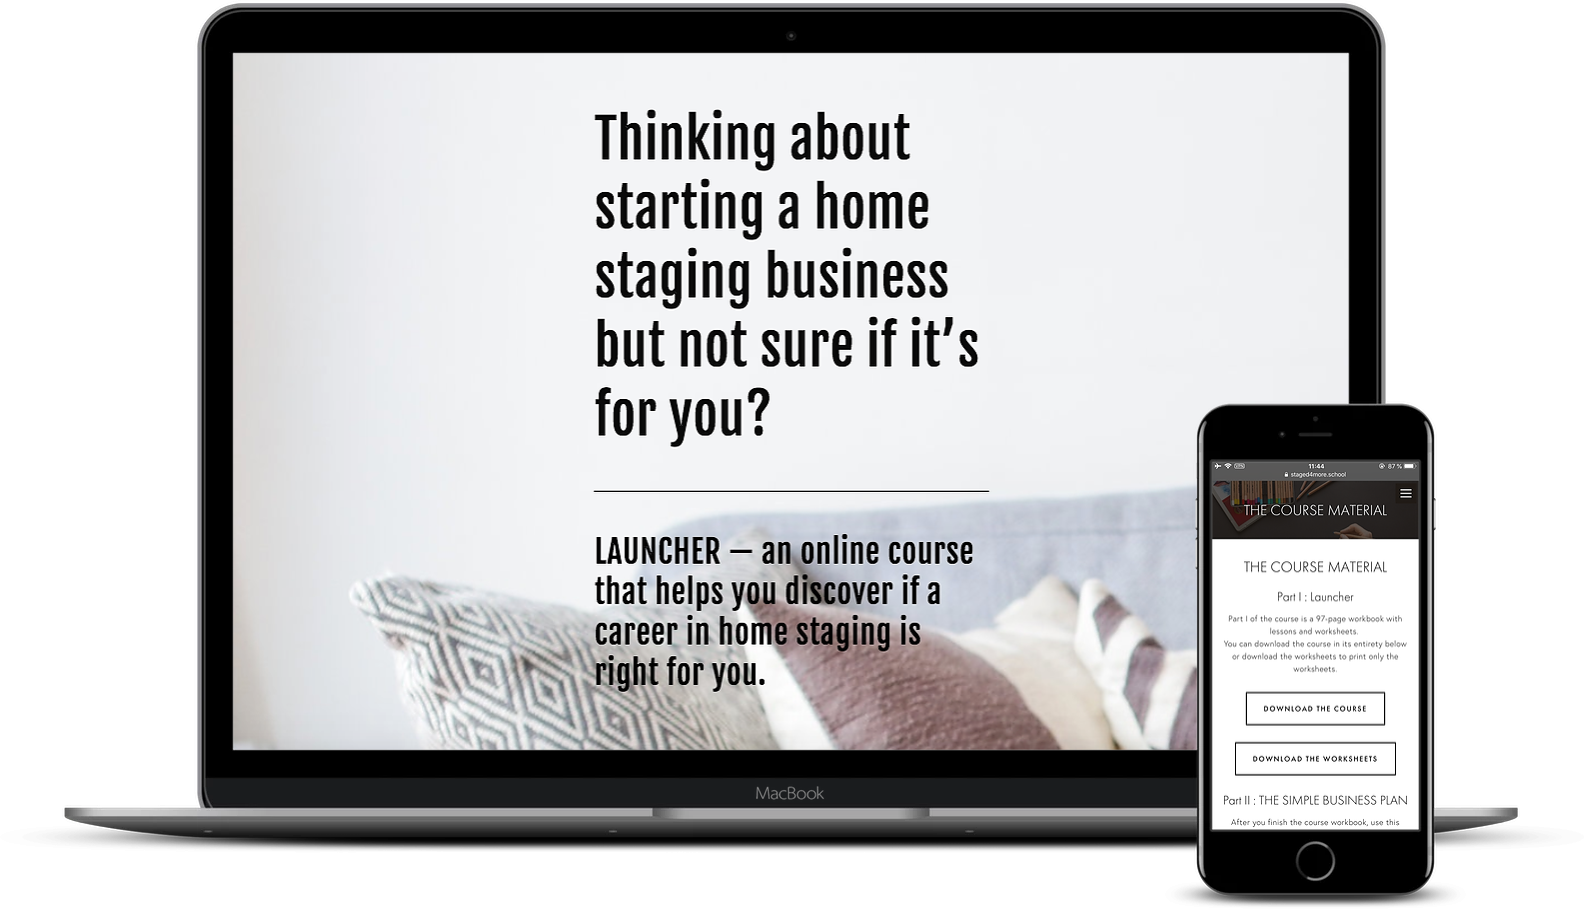 Thinking about starting a home staging business but not sure if it's for you? Launcher is an online course designed to help you discover if a career in home staging is right for you. Even if you decided not to become a stager, all the business principles taught in the course and be applied to any other new venture you decide to pursue. The course also includes a business plan for you to knock out any ideas you have about your new business.